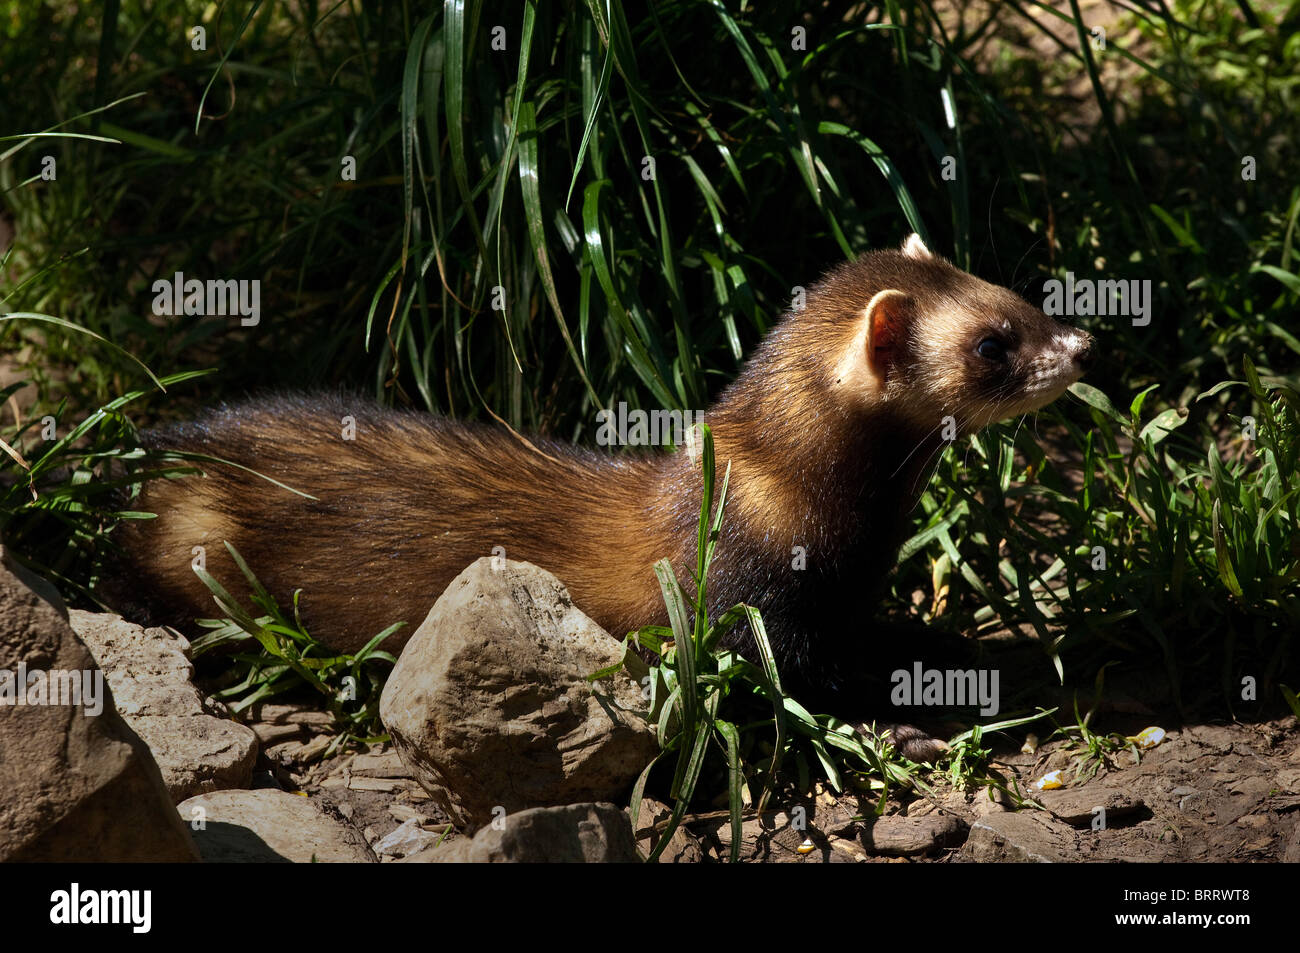 Wiesel Stock Photos Amp Wiesel Stock Images